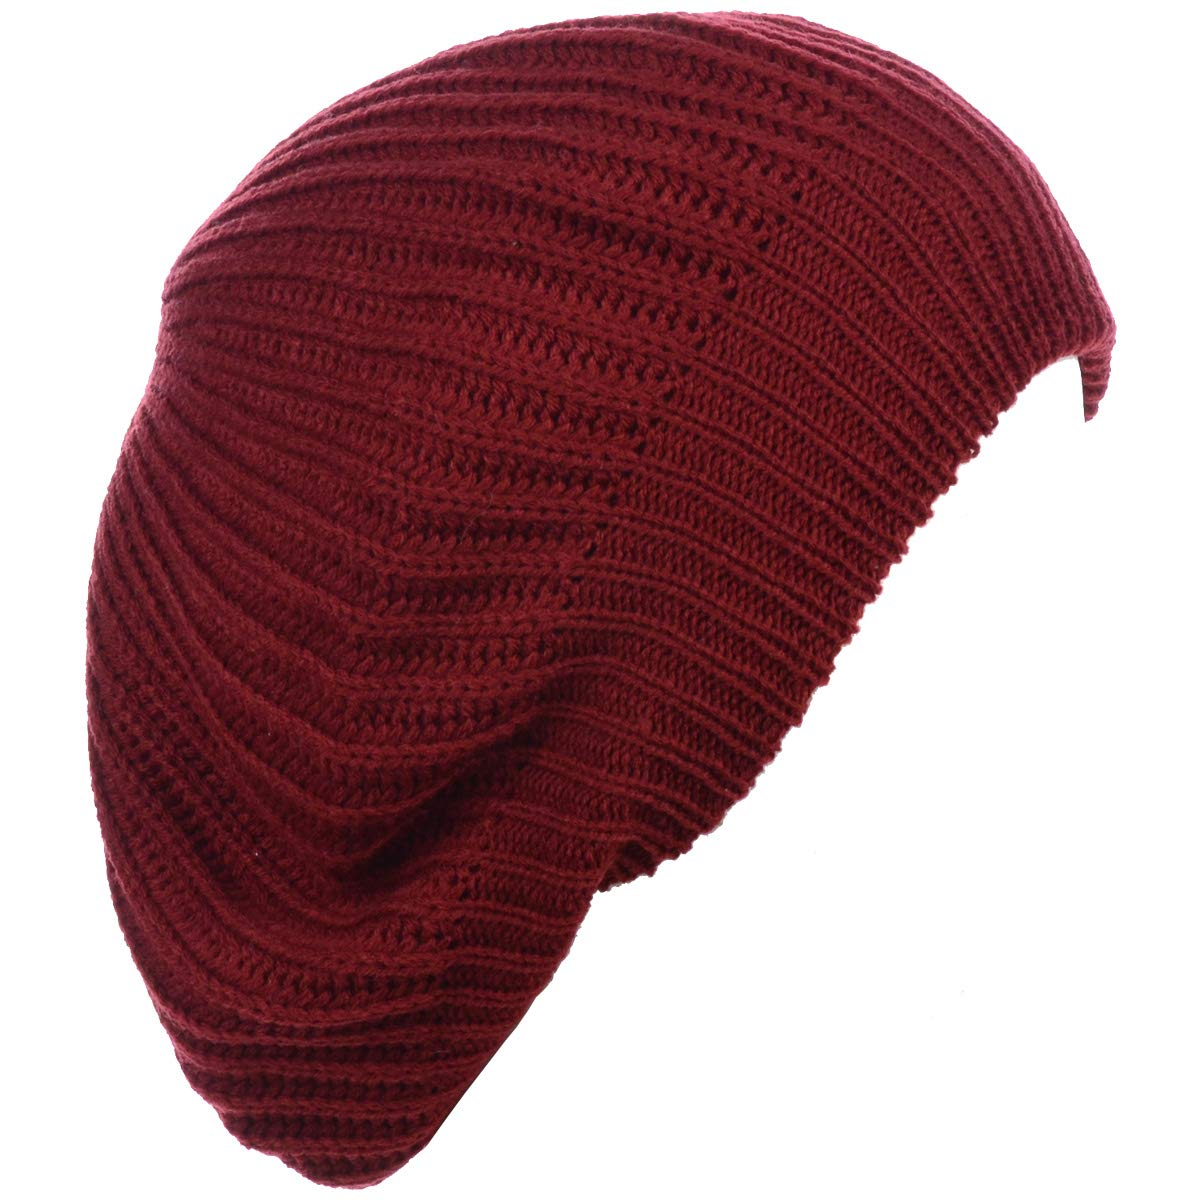 Be Your Own Style BYOS Ladies Winter Solid Chic Slouchy Ribbed Crochet Knit Beret Beanie Hat